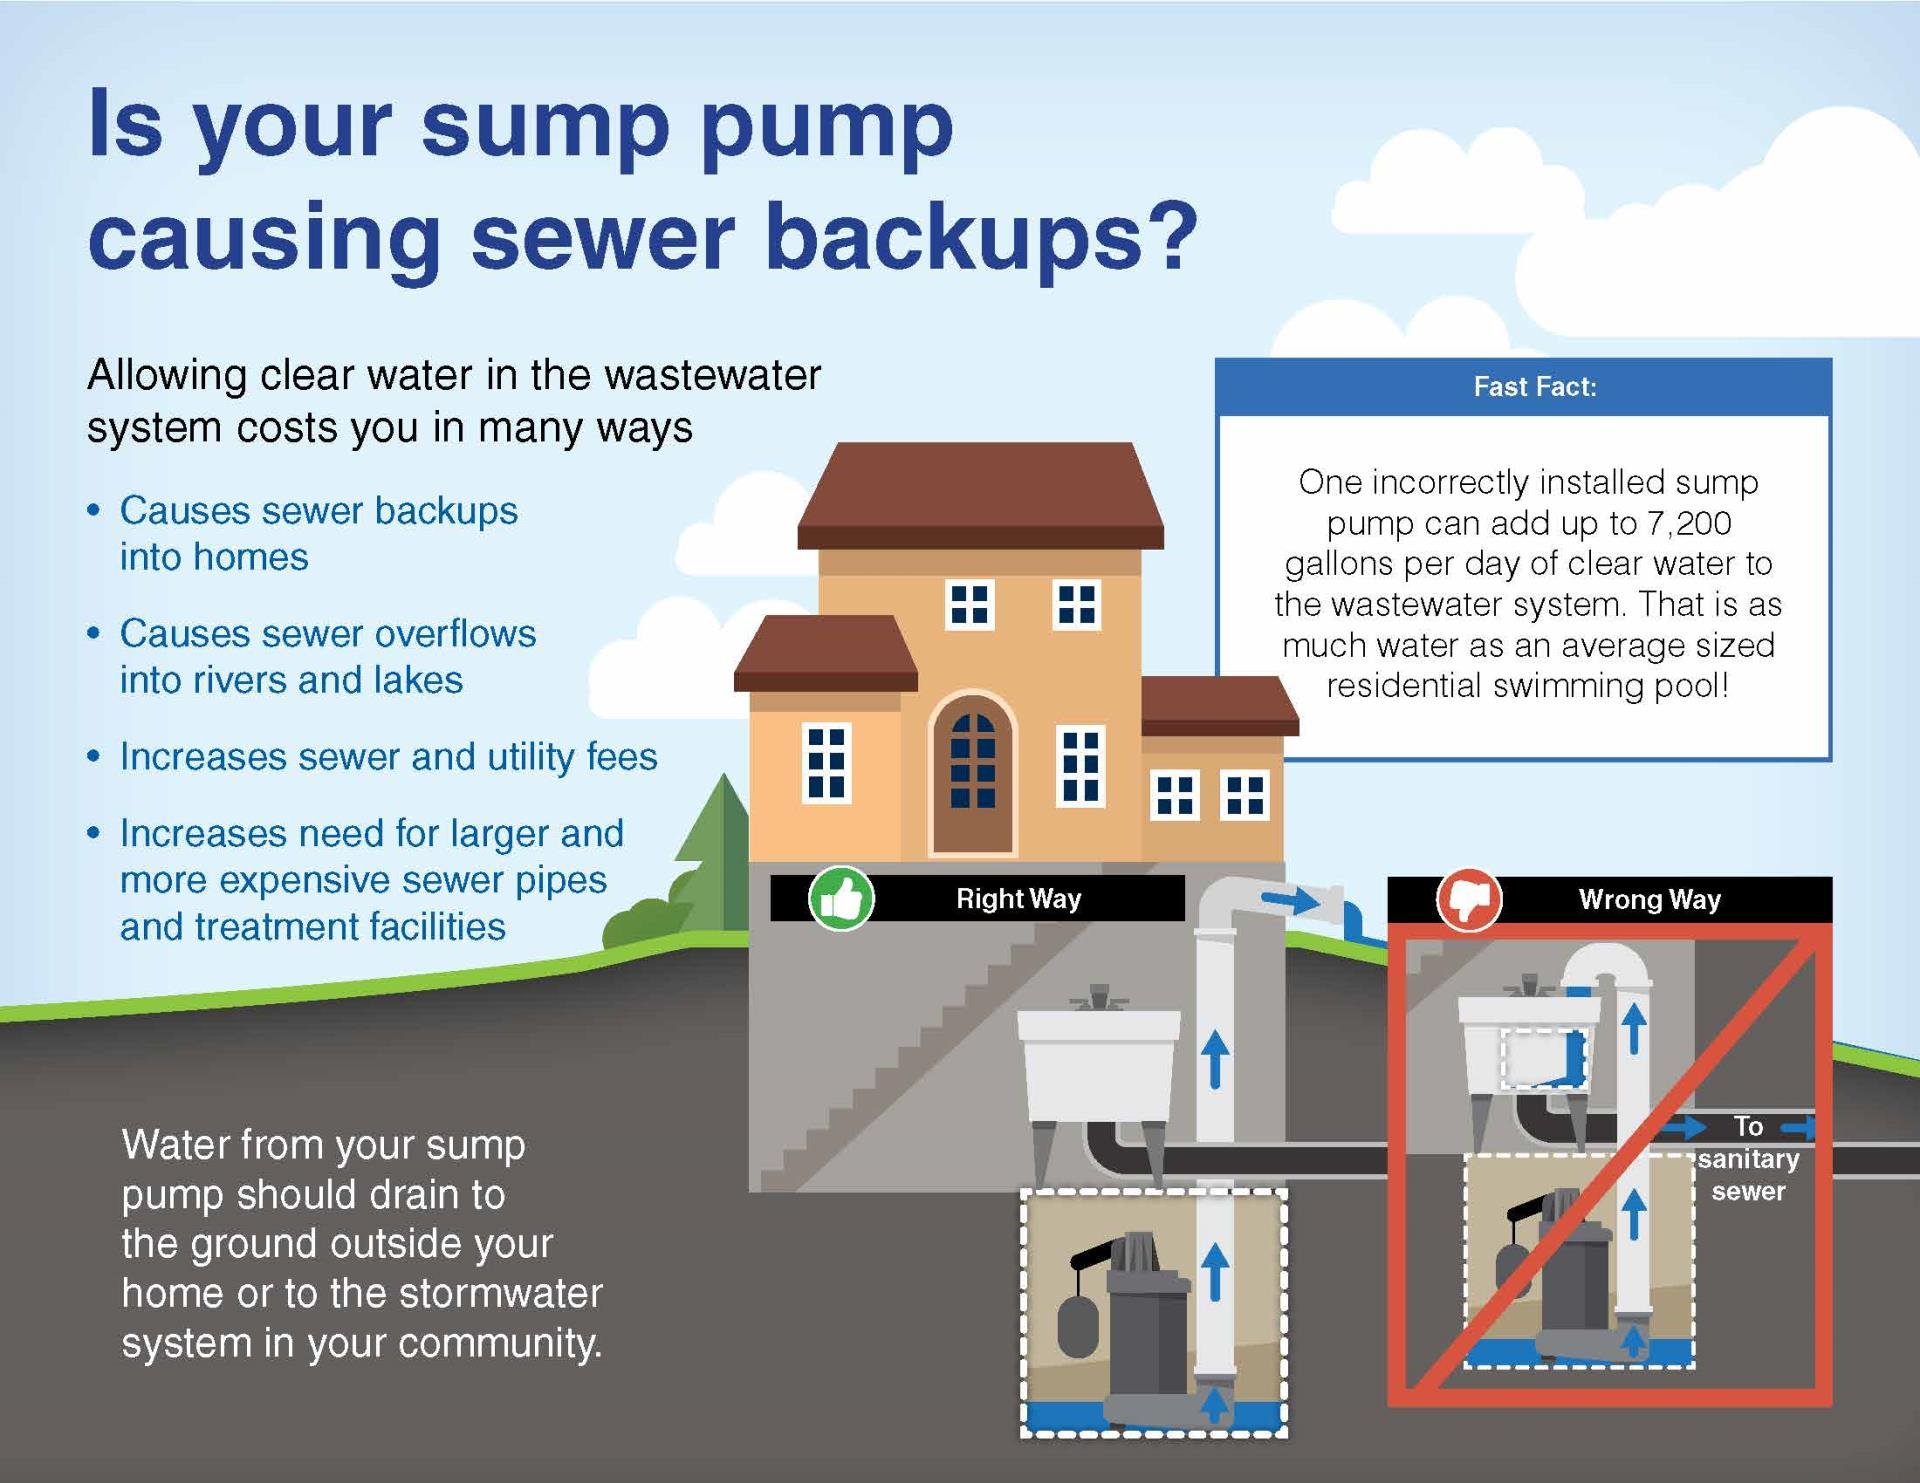 Graphic showing how allowing clear water in the wastewater system costs homeowners